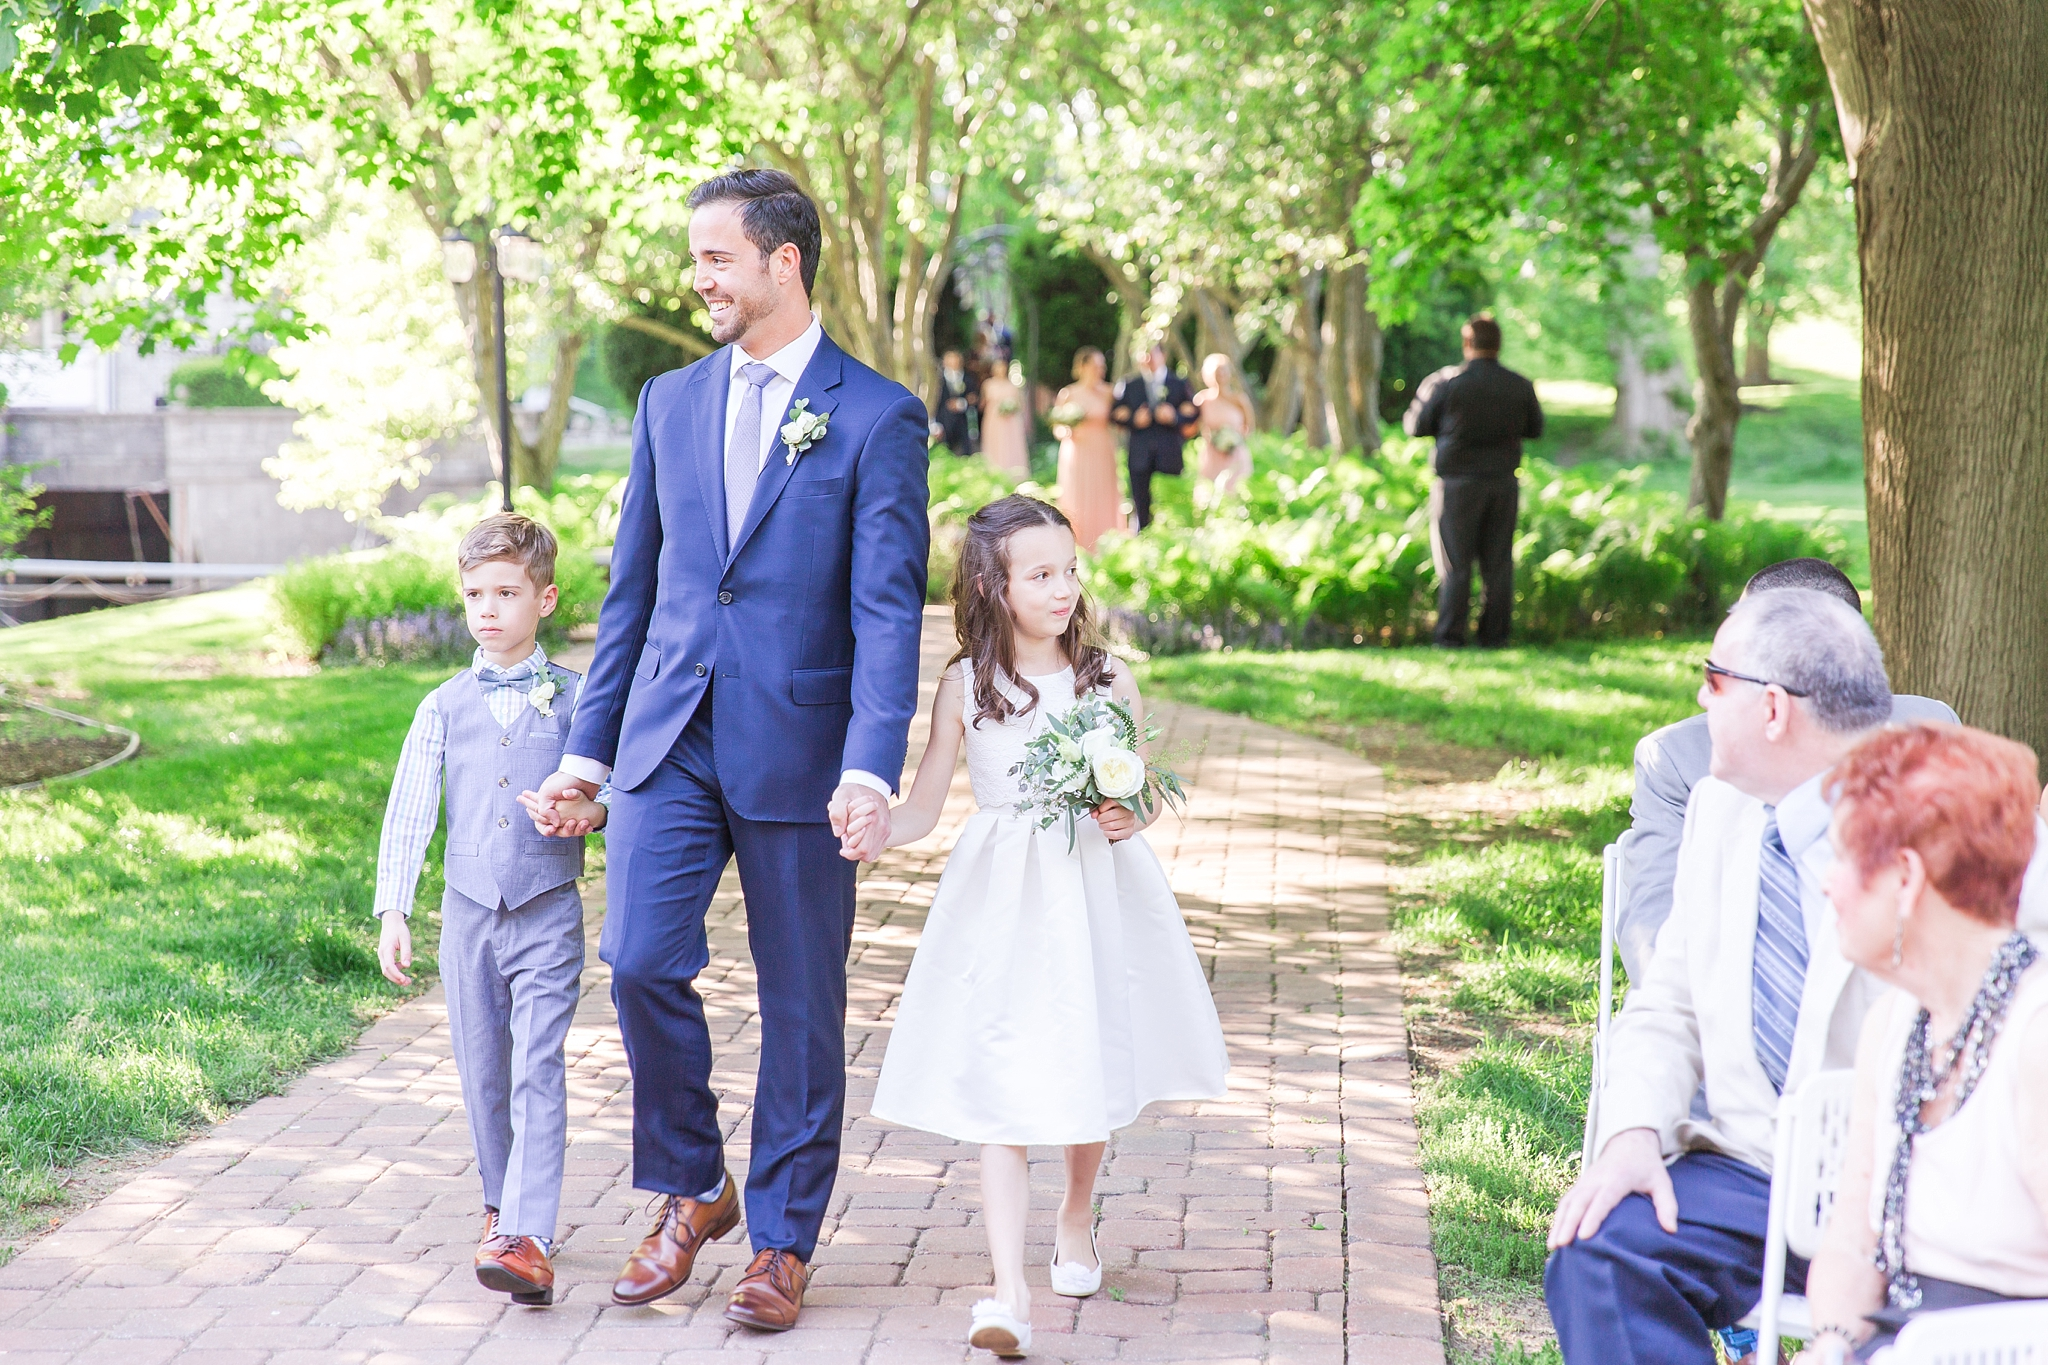 fun-candid-laid-back-wedding-photos-at-wellers-carriage-house-in-saline-michigan-and-at-the-eagle-crest-golf-resort-by-courtney-carolyn-photography_0060.jpg